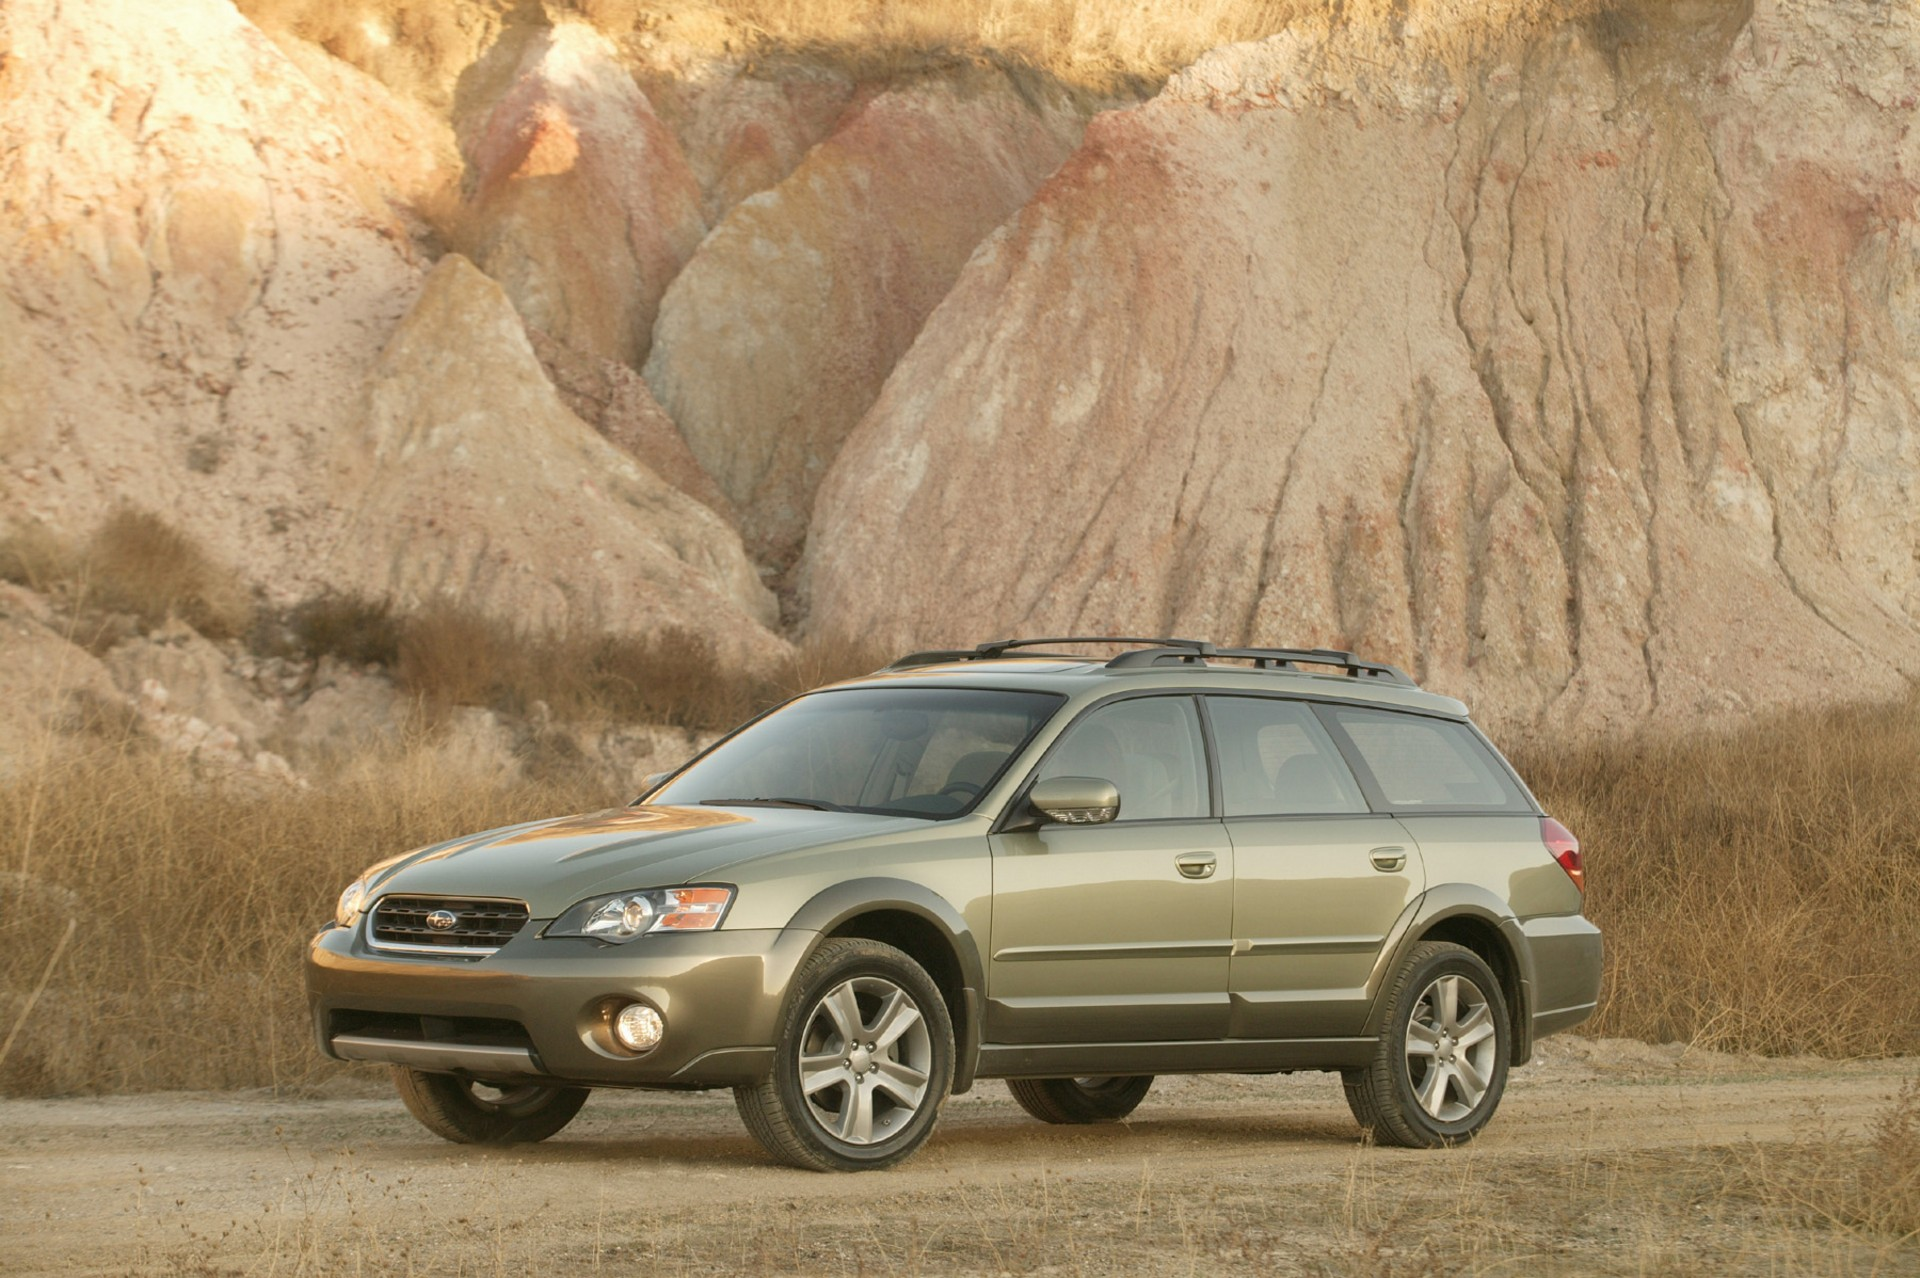 2007 Subaru Outback History Pictures Value Auction Sales 1998 Limited Research And News